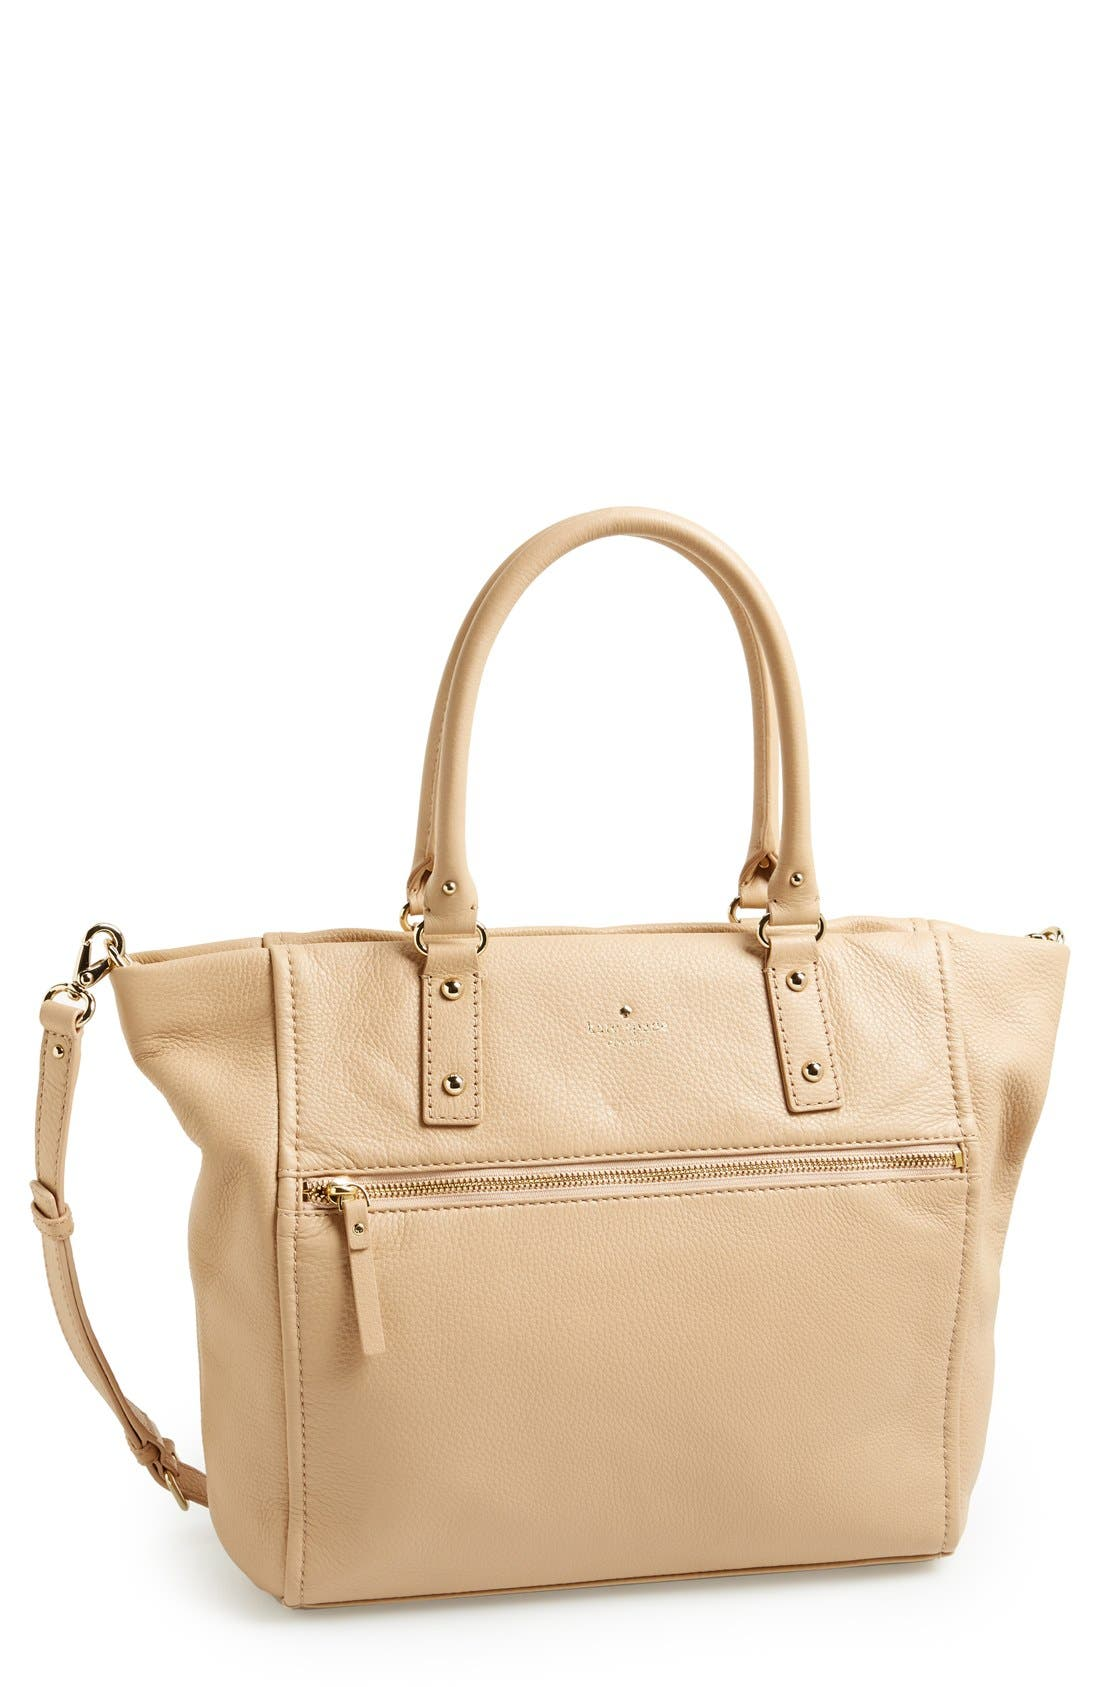 Main Image - kate spade new york 'cobble hill - lilla' leather tote (Nordstrom Exclusive)